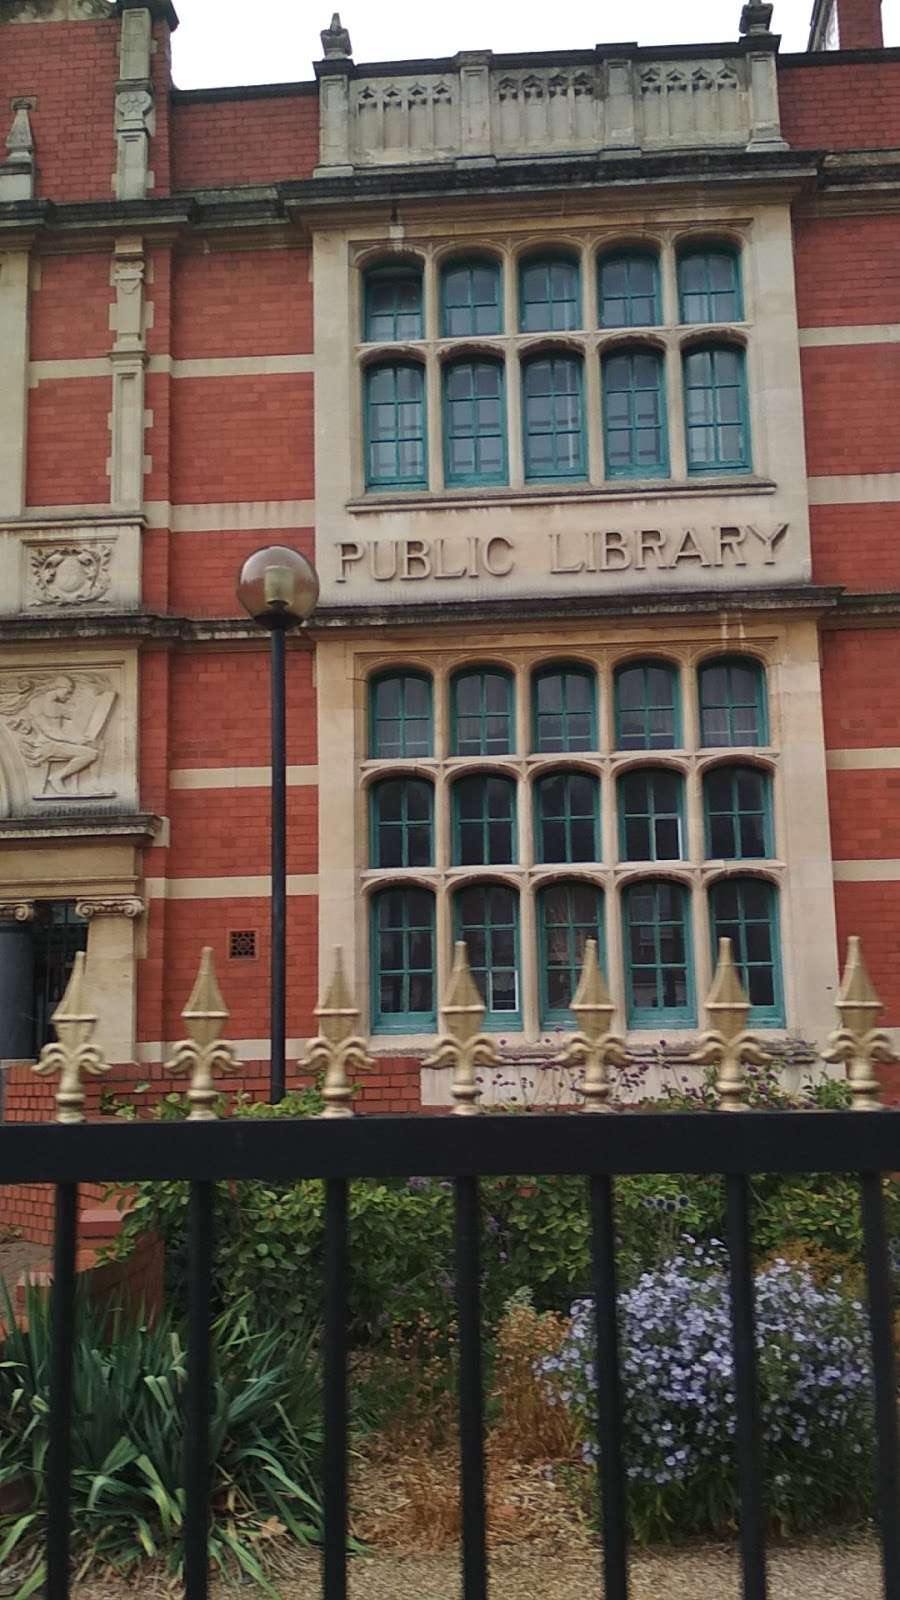 Passmore Edwards Public Library - library  | Photo 2 of 10 | Address: 207 Plashet Grove, London E6 1BT, UK